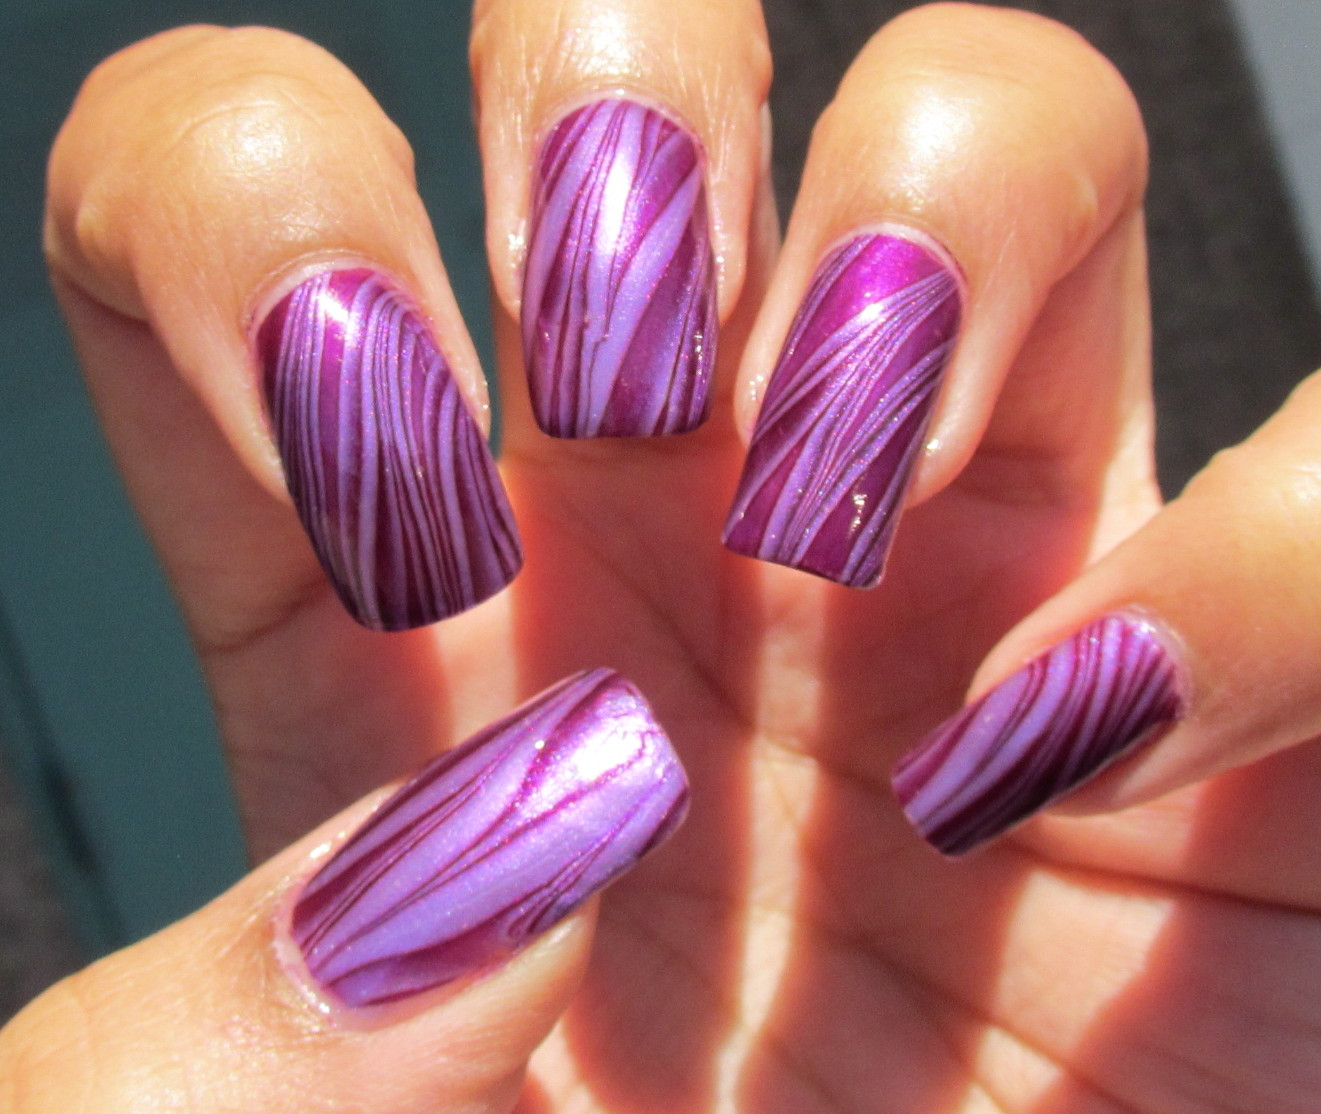 My Simple Little Pleasures Notd Purple Stripes Water